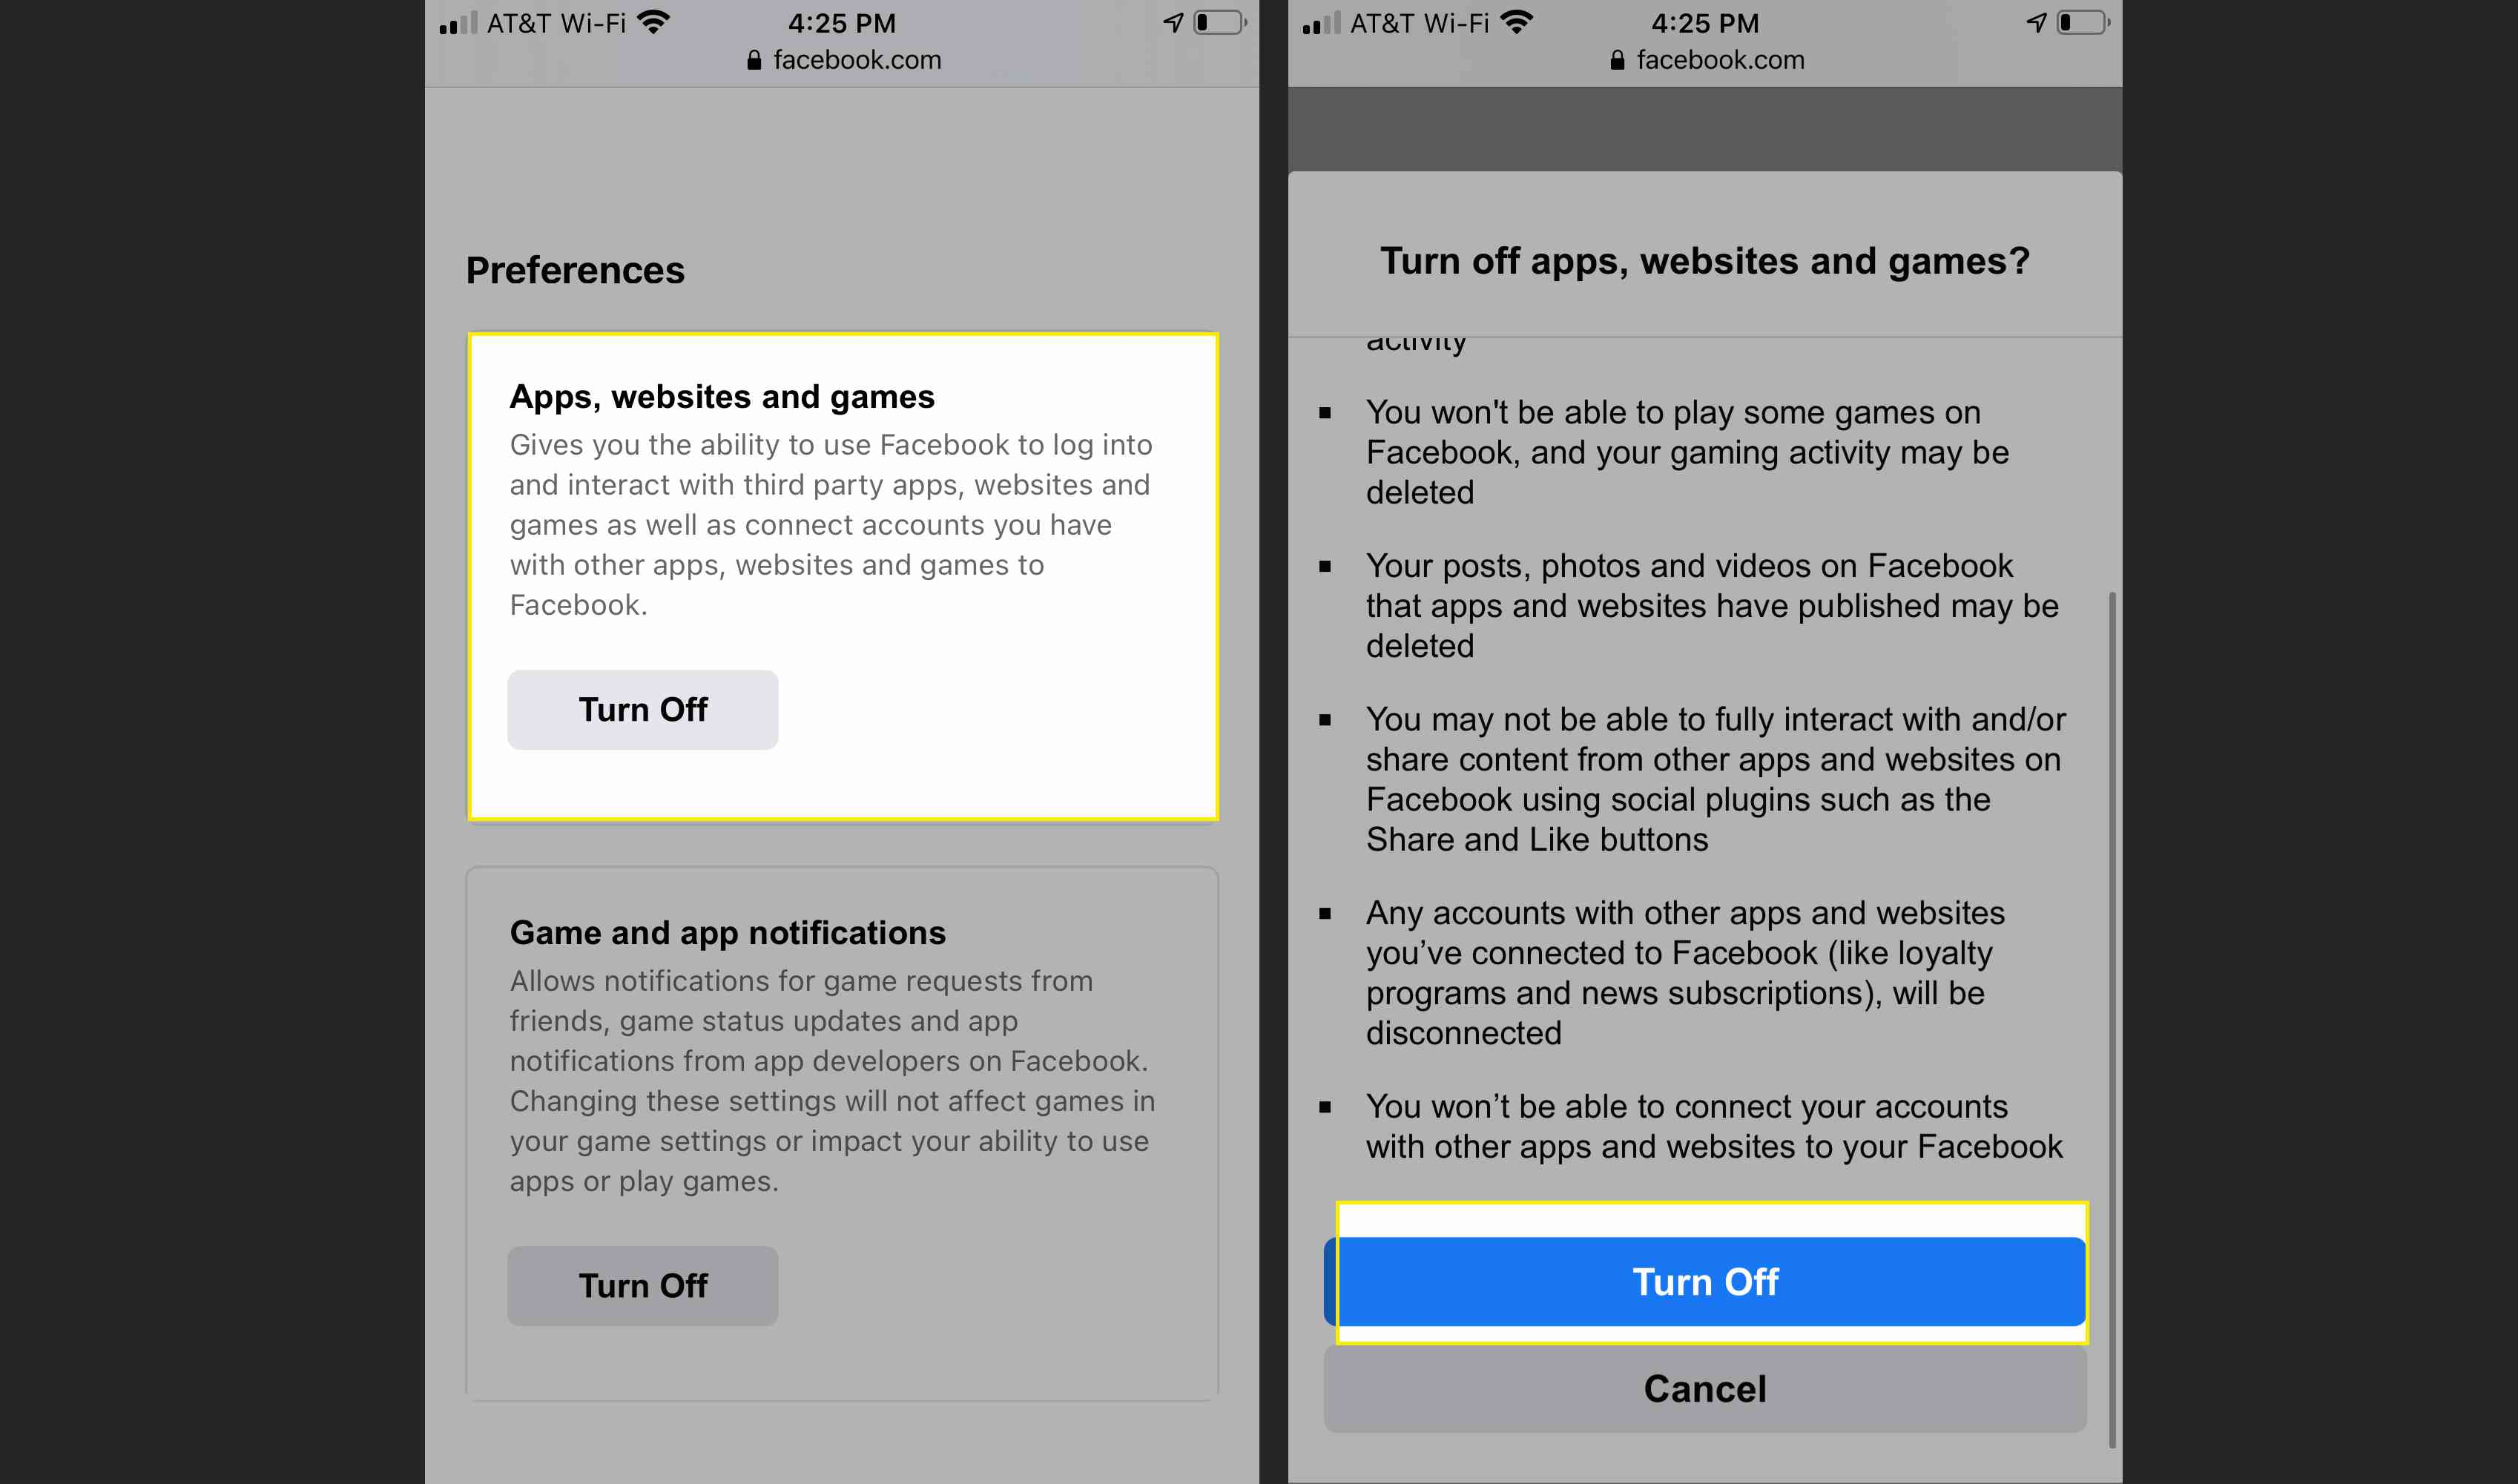 Facebook permissions on iPhone in Safari with Apps, websites and games, and Turn Off highlighted